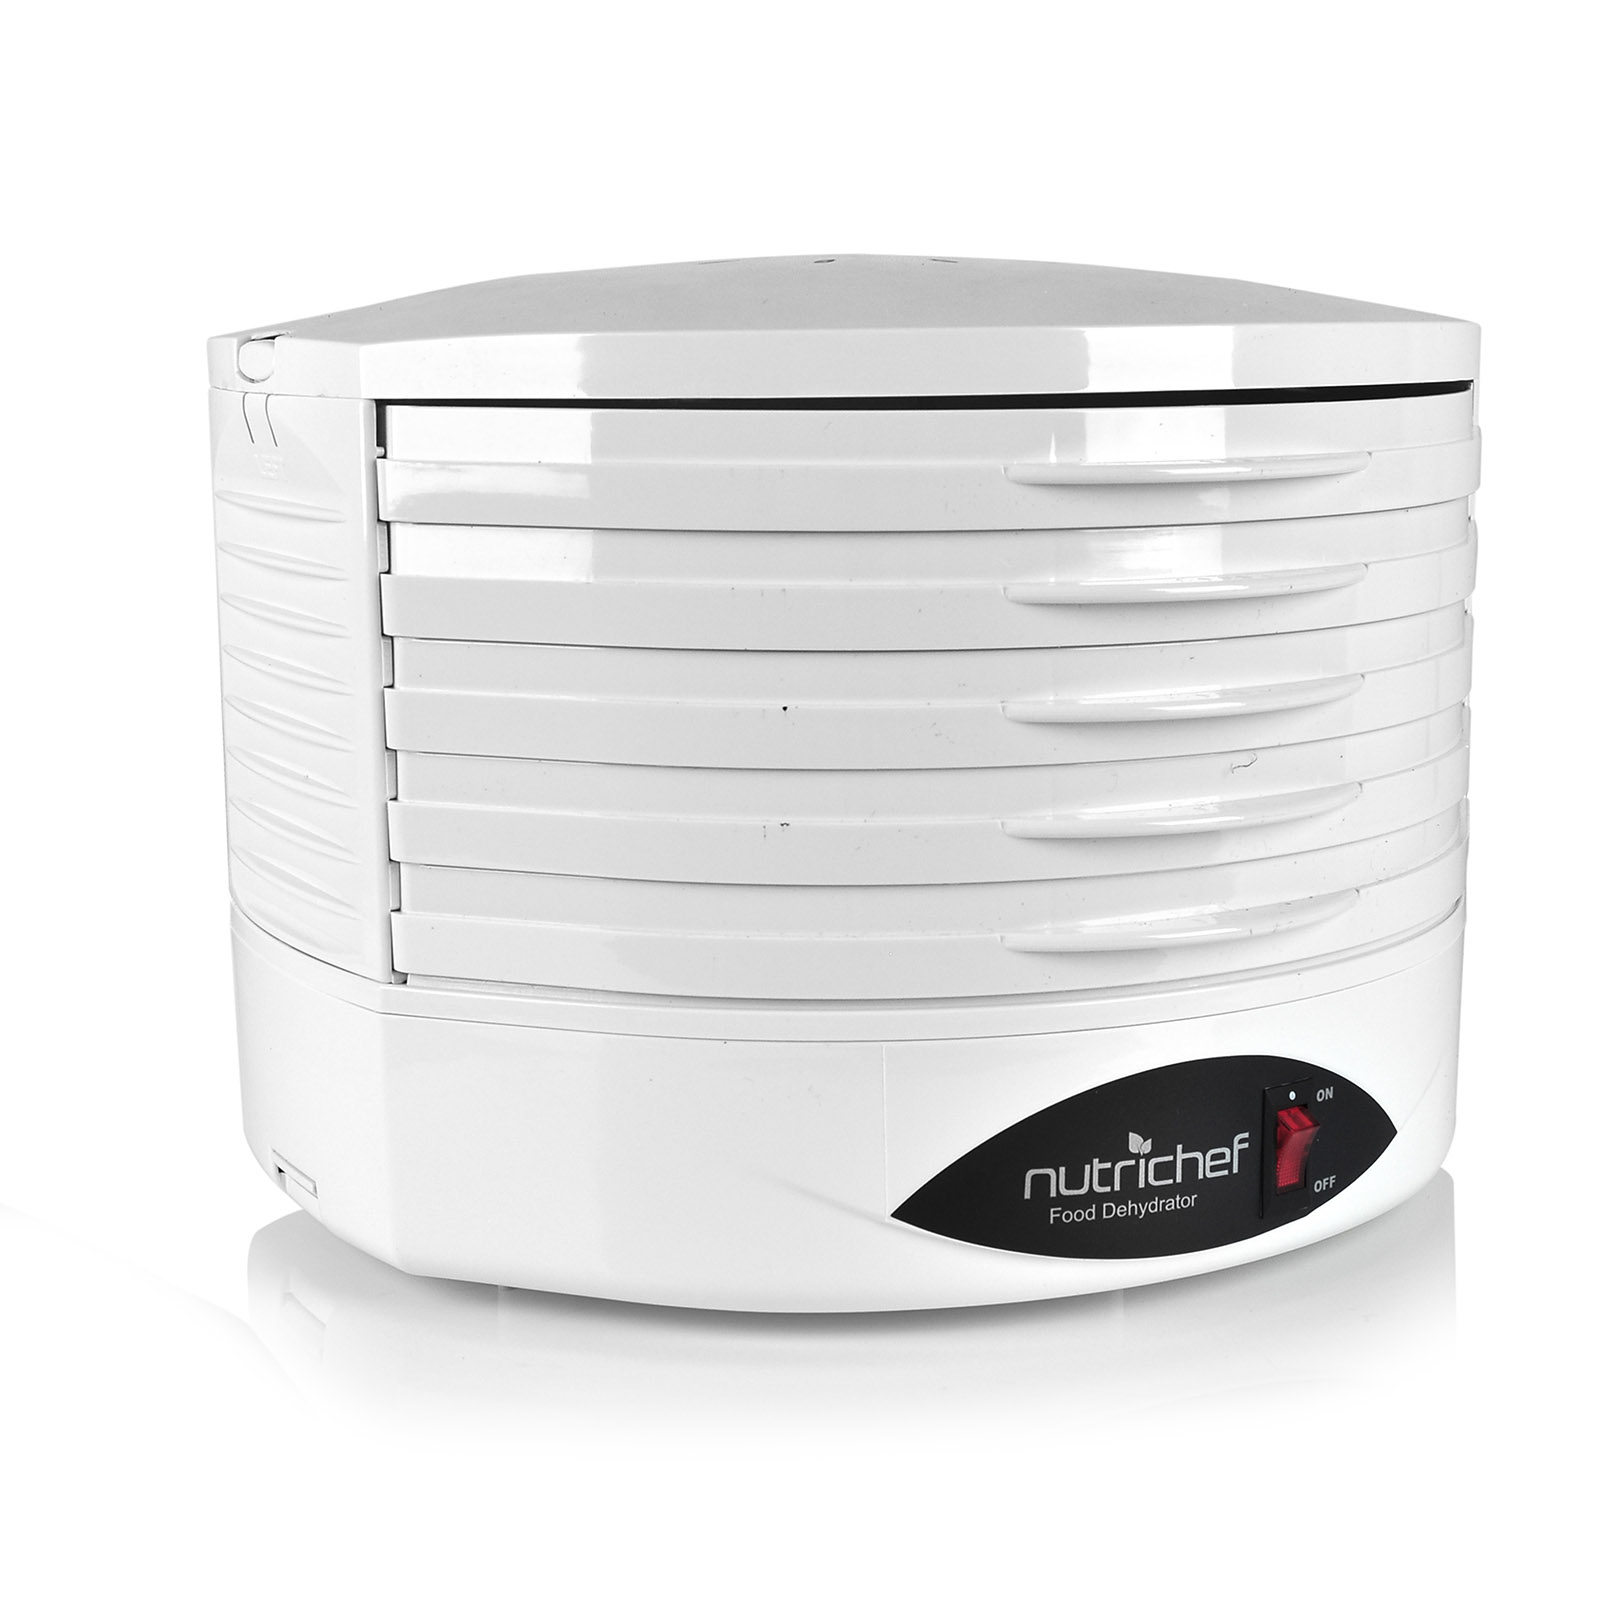 NutriChef Food Dehydrator - Electric Kitchen Dehydrator-White